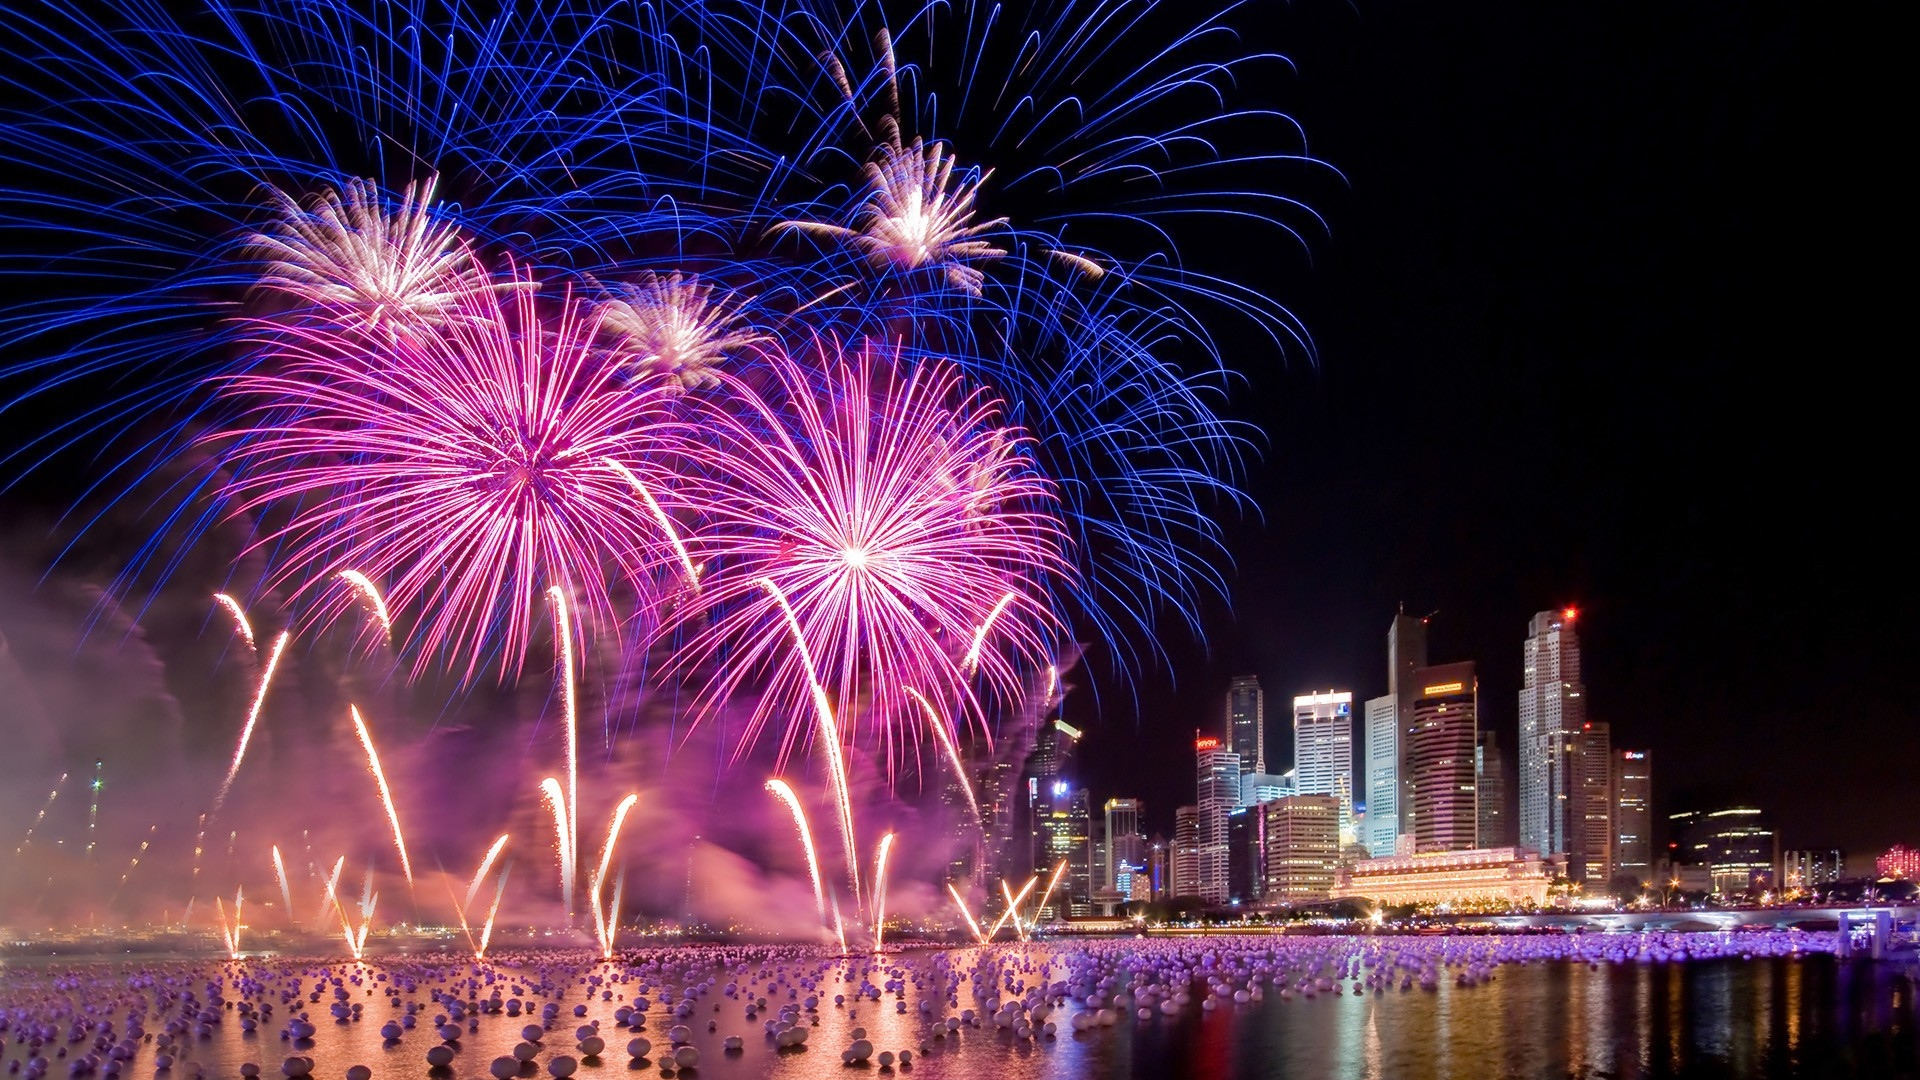 Download Wallpaper 1920x1080 City Holiday Night Sky Fireworks